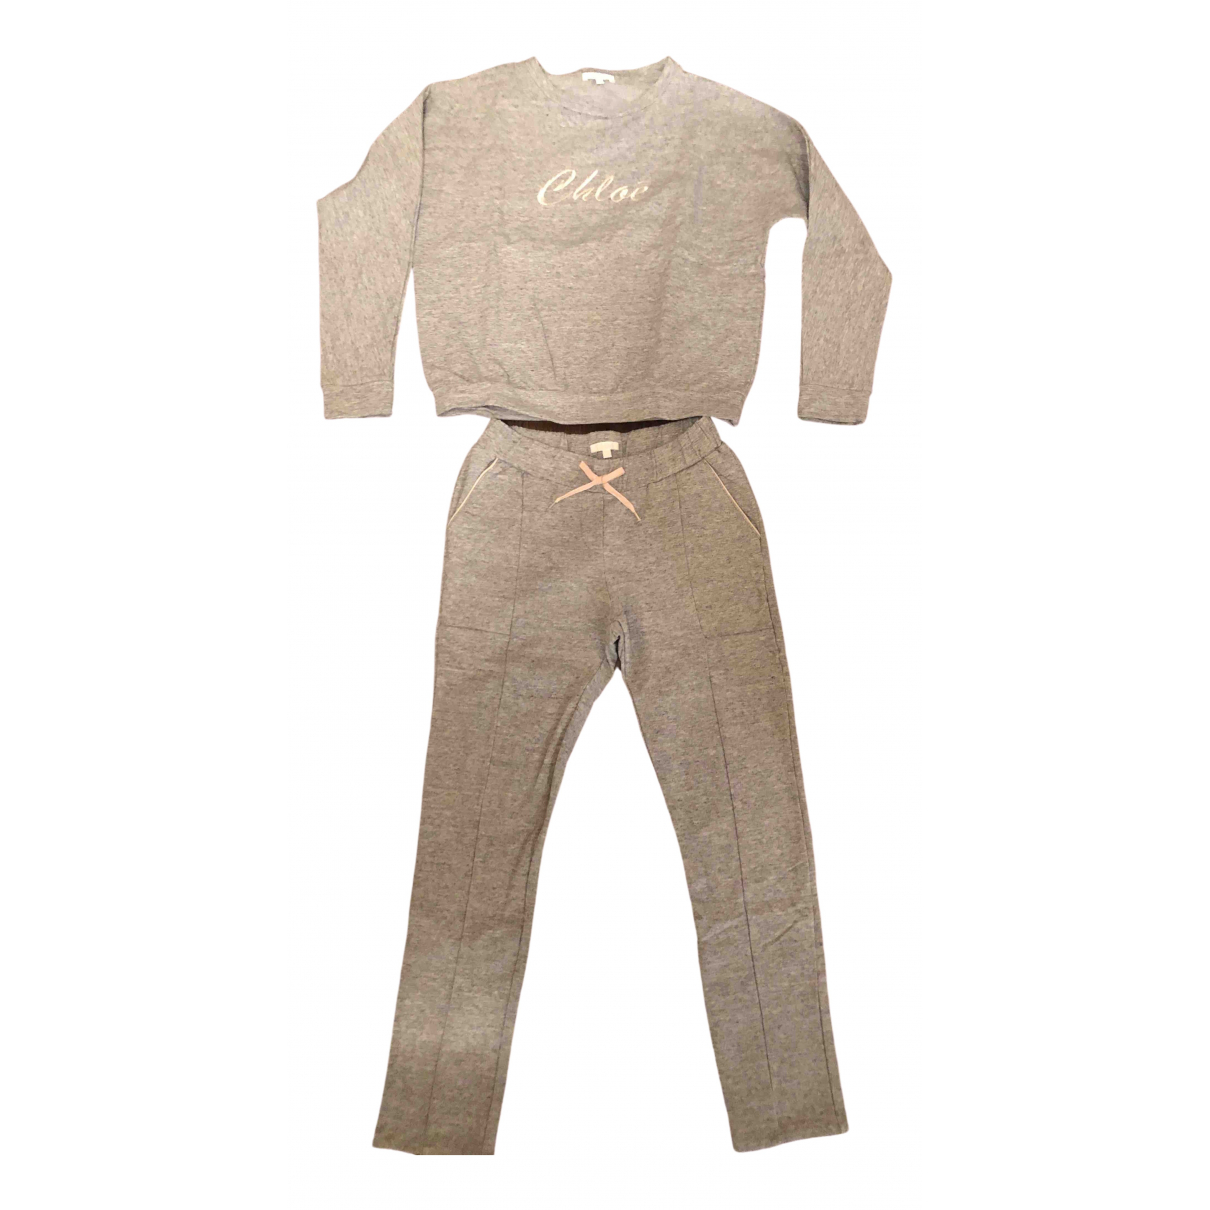 Chloé \N Grey Cotton Outfits for Kids 10 years - up to 142cm FR